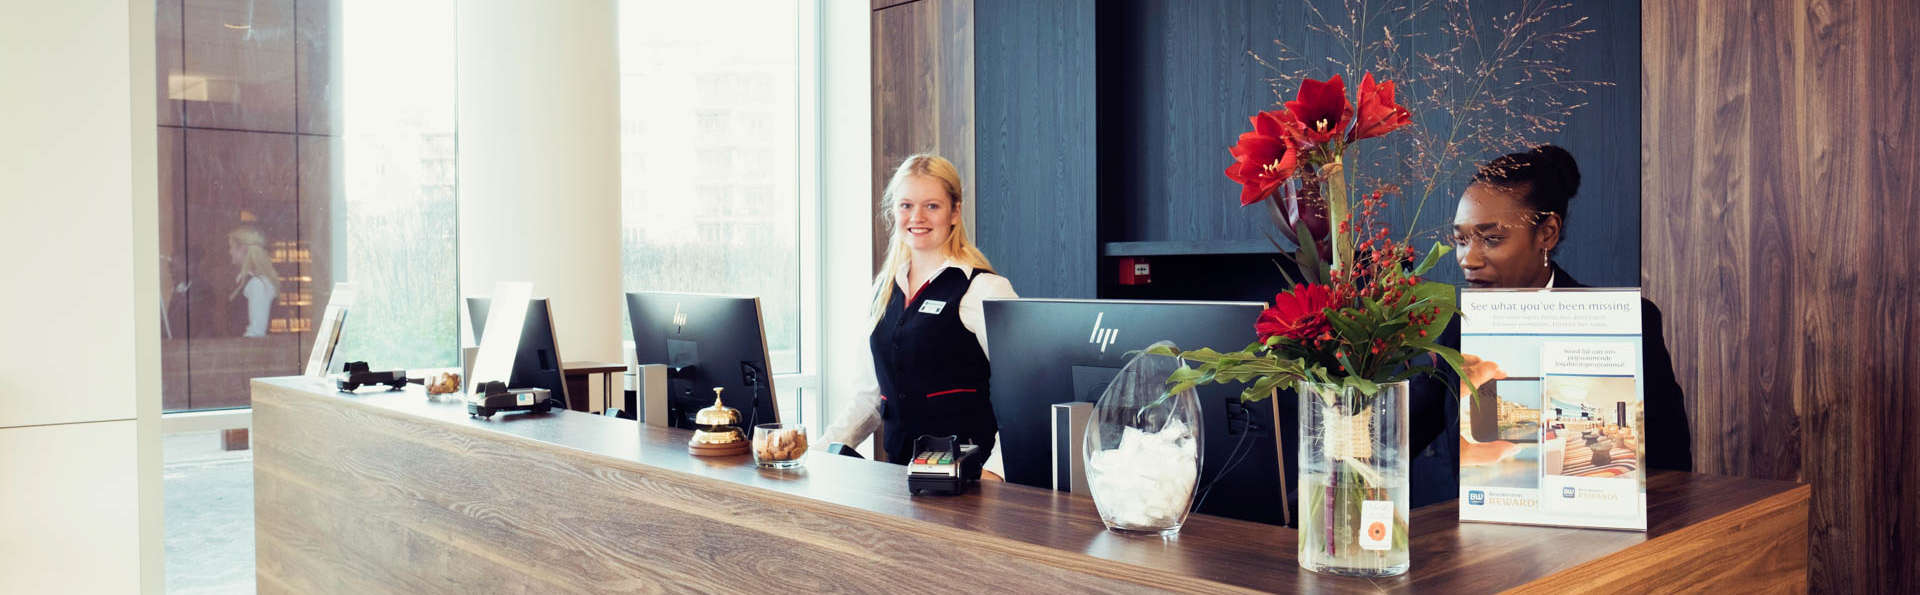 Best Western Plus Plaza Almere - EDIT_NEW_RECEPTION-3.jpg